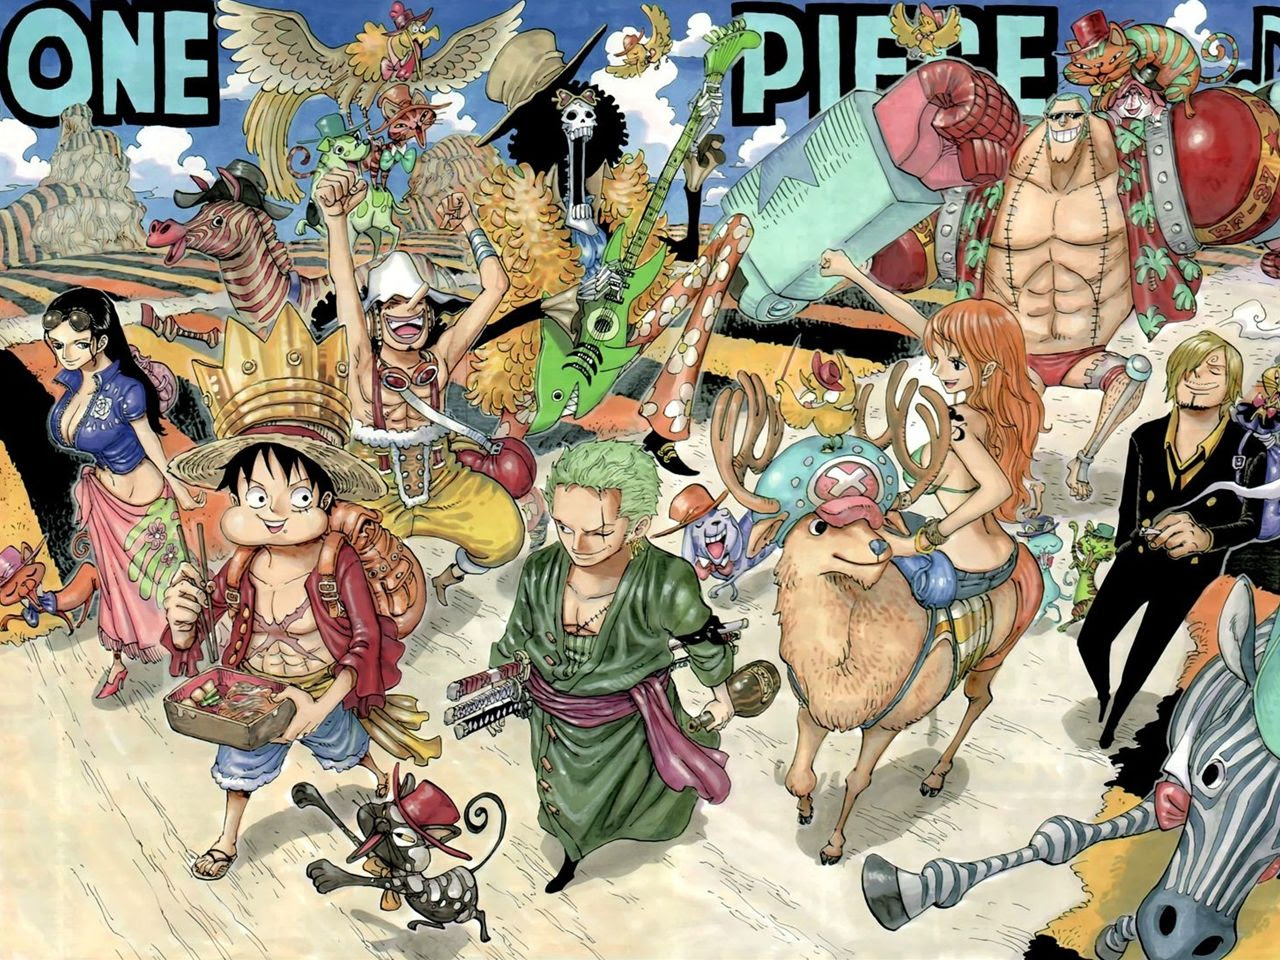 Vocaloid ボーカロイド 壁紙家 ジャンプ系 ワンピース One Piece